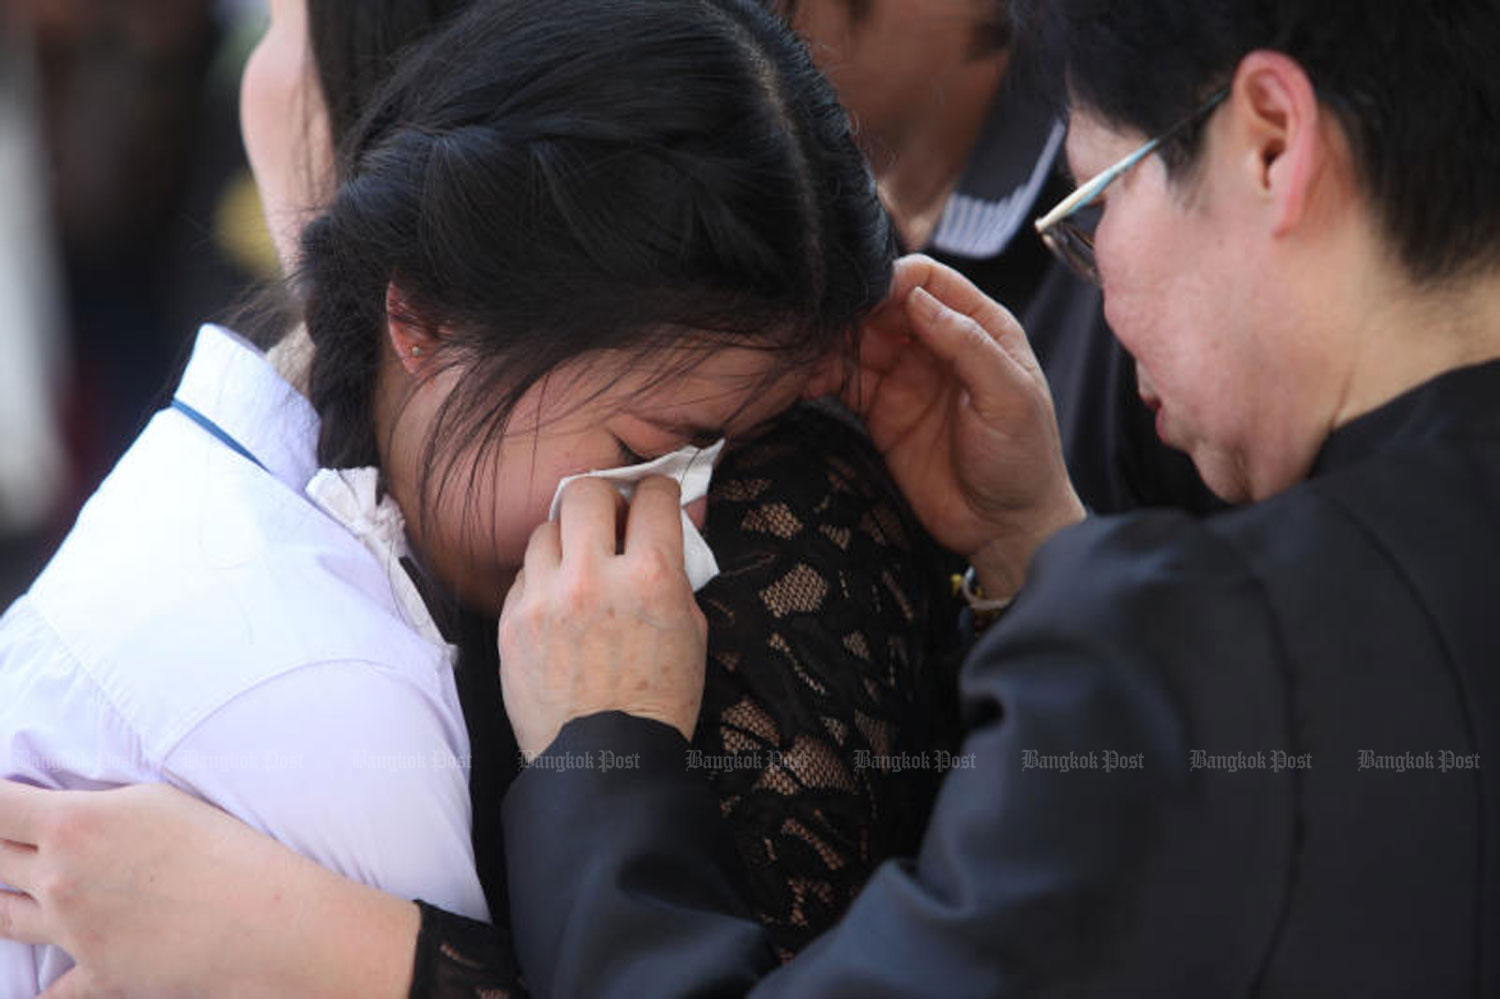 The family of Pol Lt Col Chatuporn Ngamsuwichakul and his wife Nuchanart at their funeral at Wat Tri Thotsathep in Bangkok on April 20. (Photo by Wichan Charoenkiatpakul)